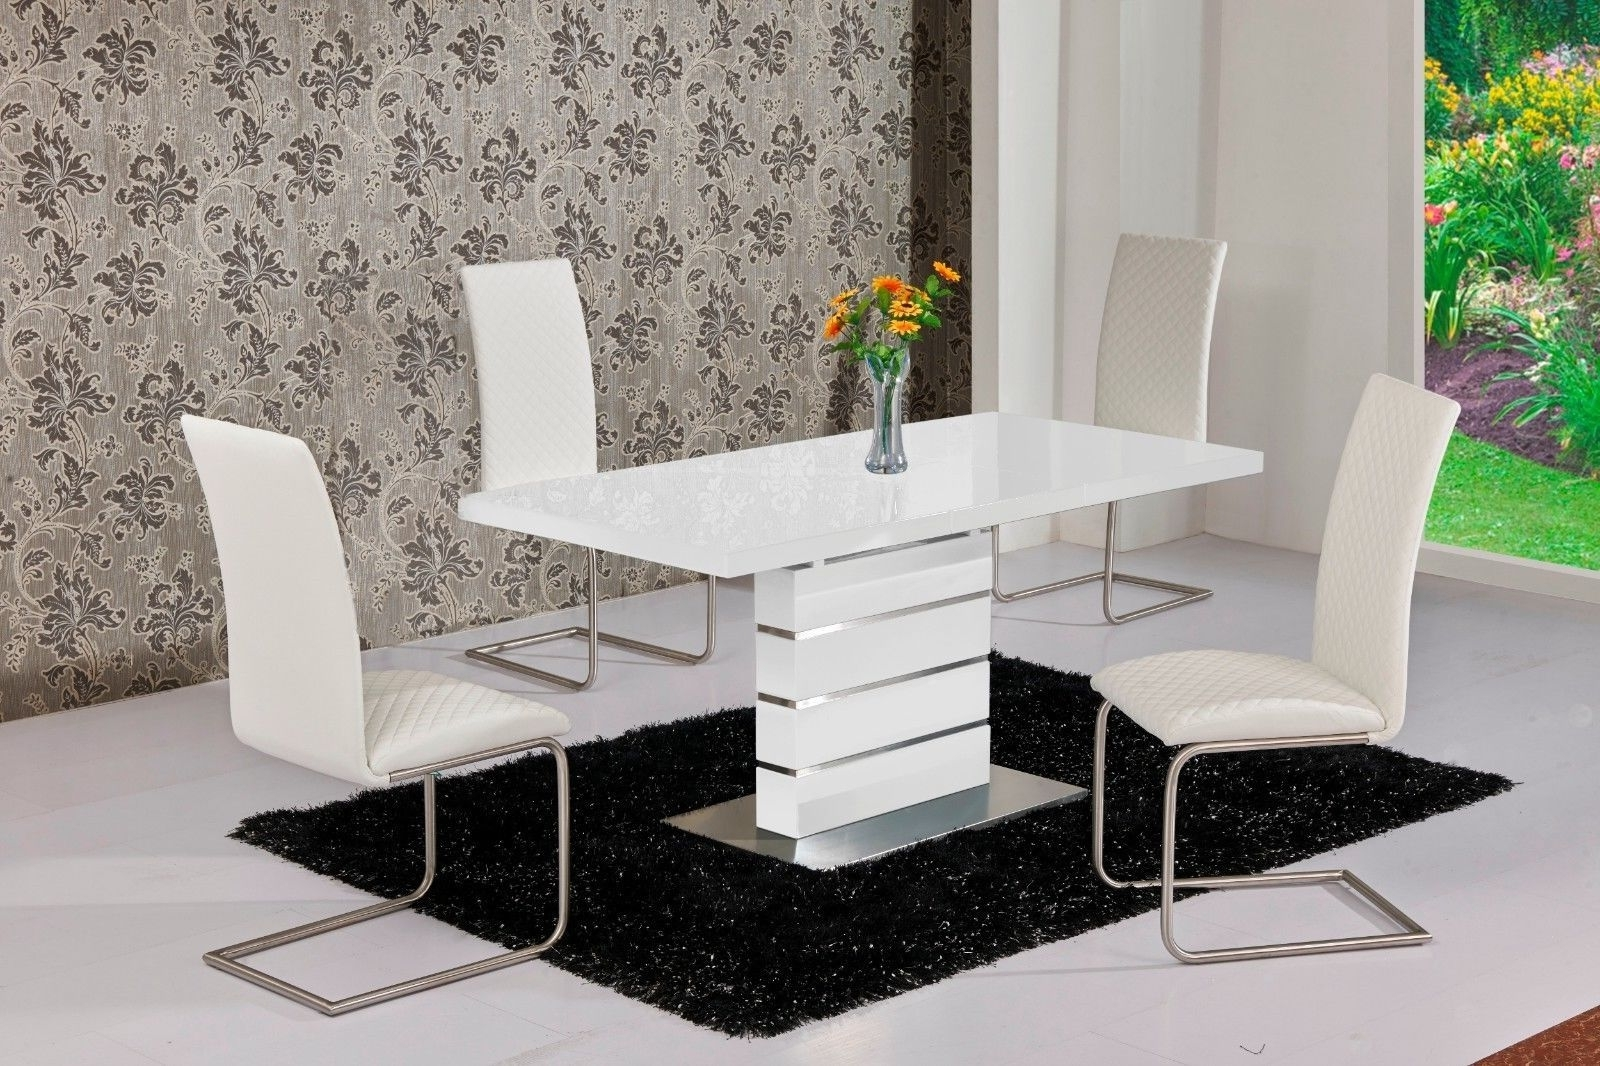 Most Recent Mace High Gloss Extending 120 160 Dining Table & Chair Set – White Within Black Gloss Dining Room Furniture (View 5 of 25)